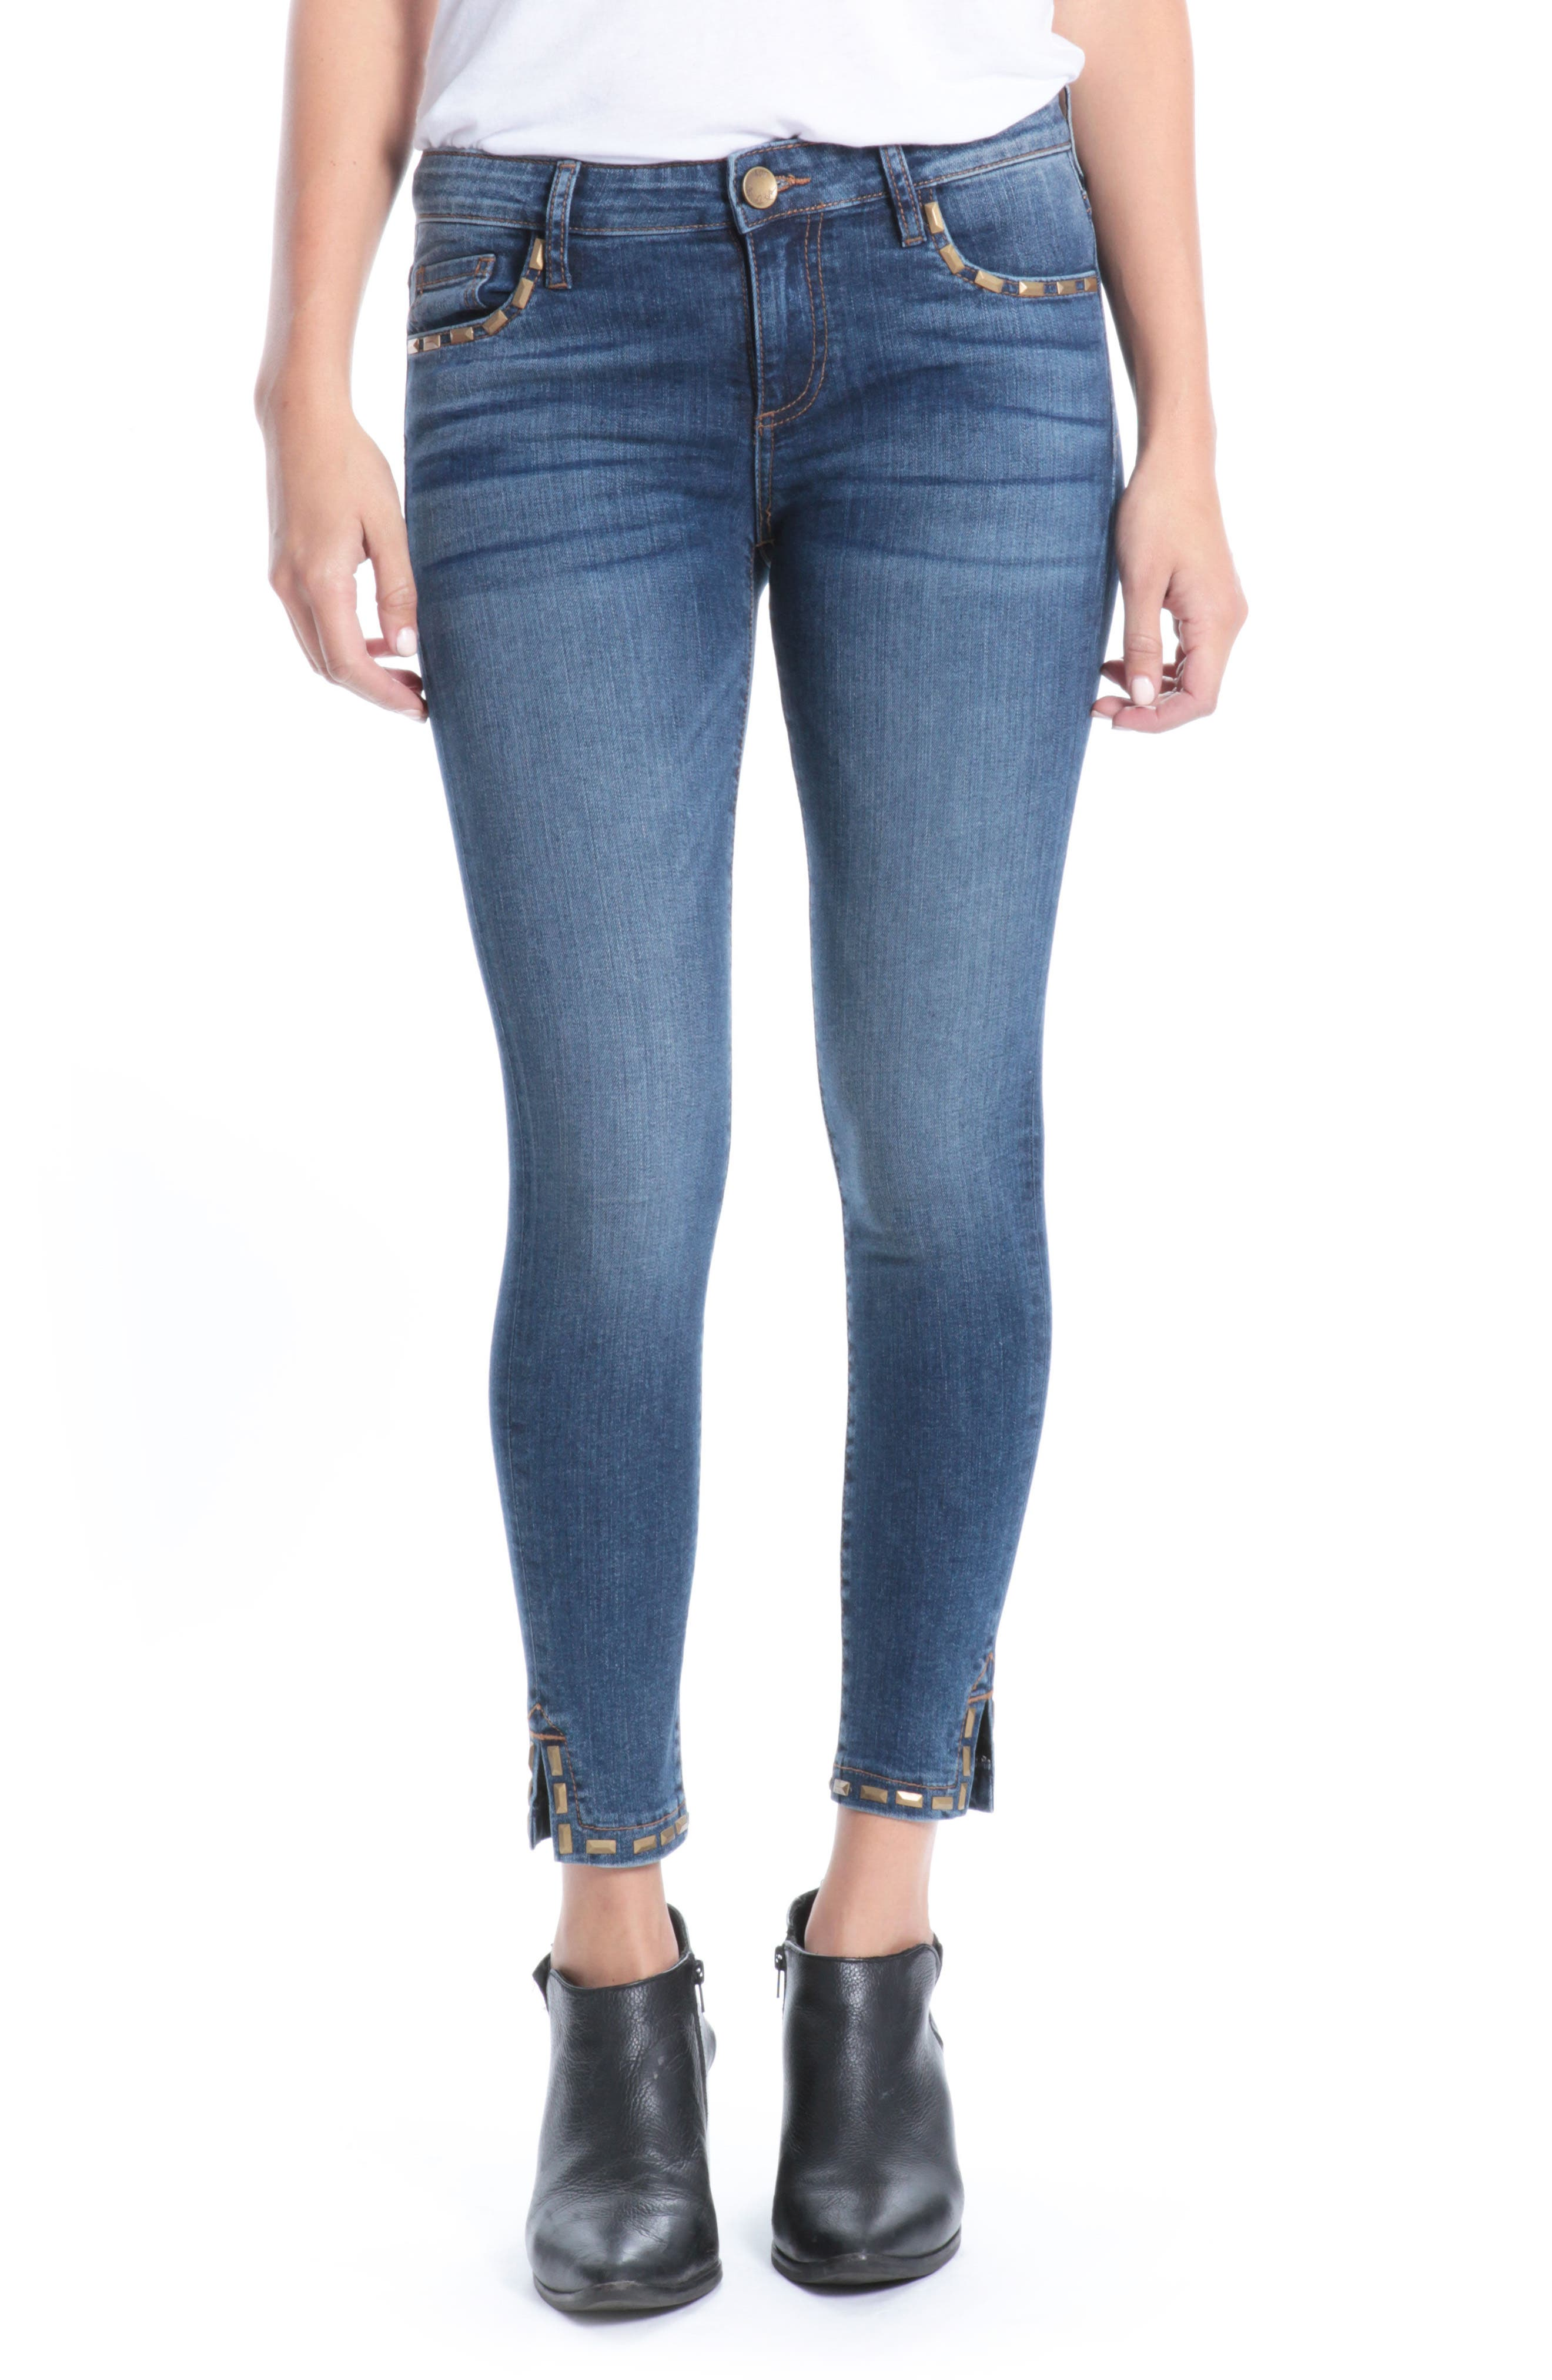 Main Image - Kut from the Kloth Donna Ankle Skinny Jeans (Varied)